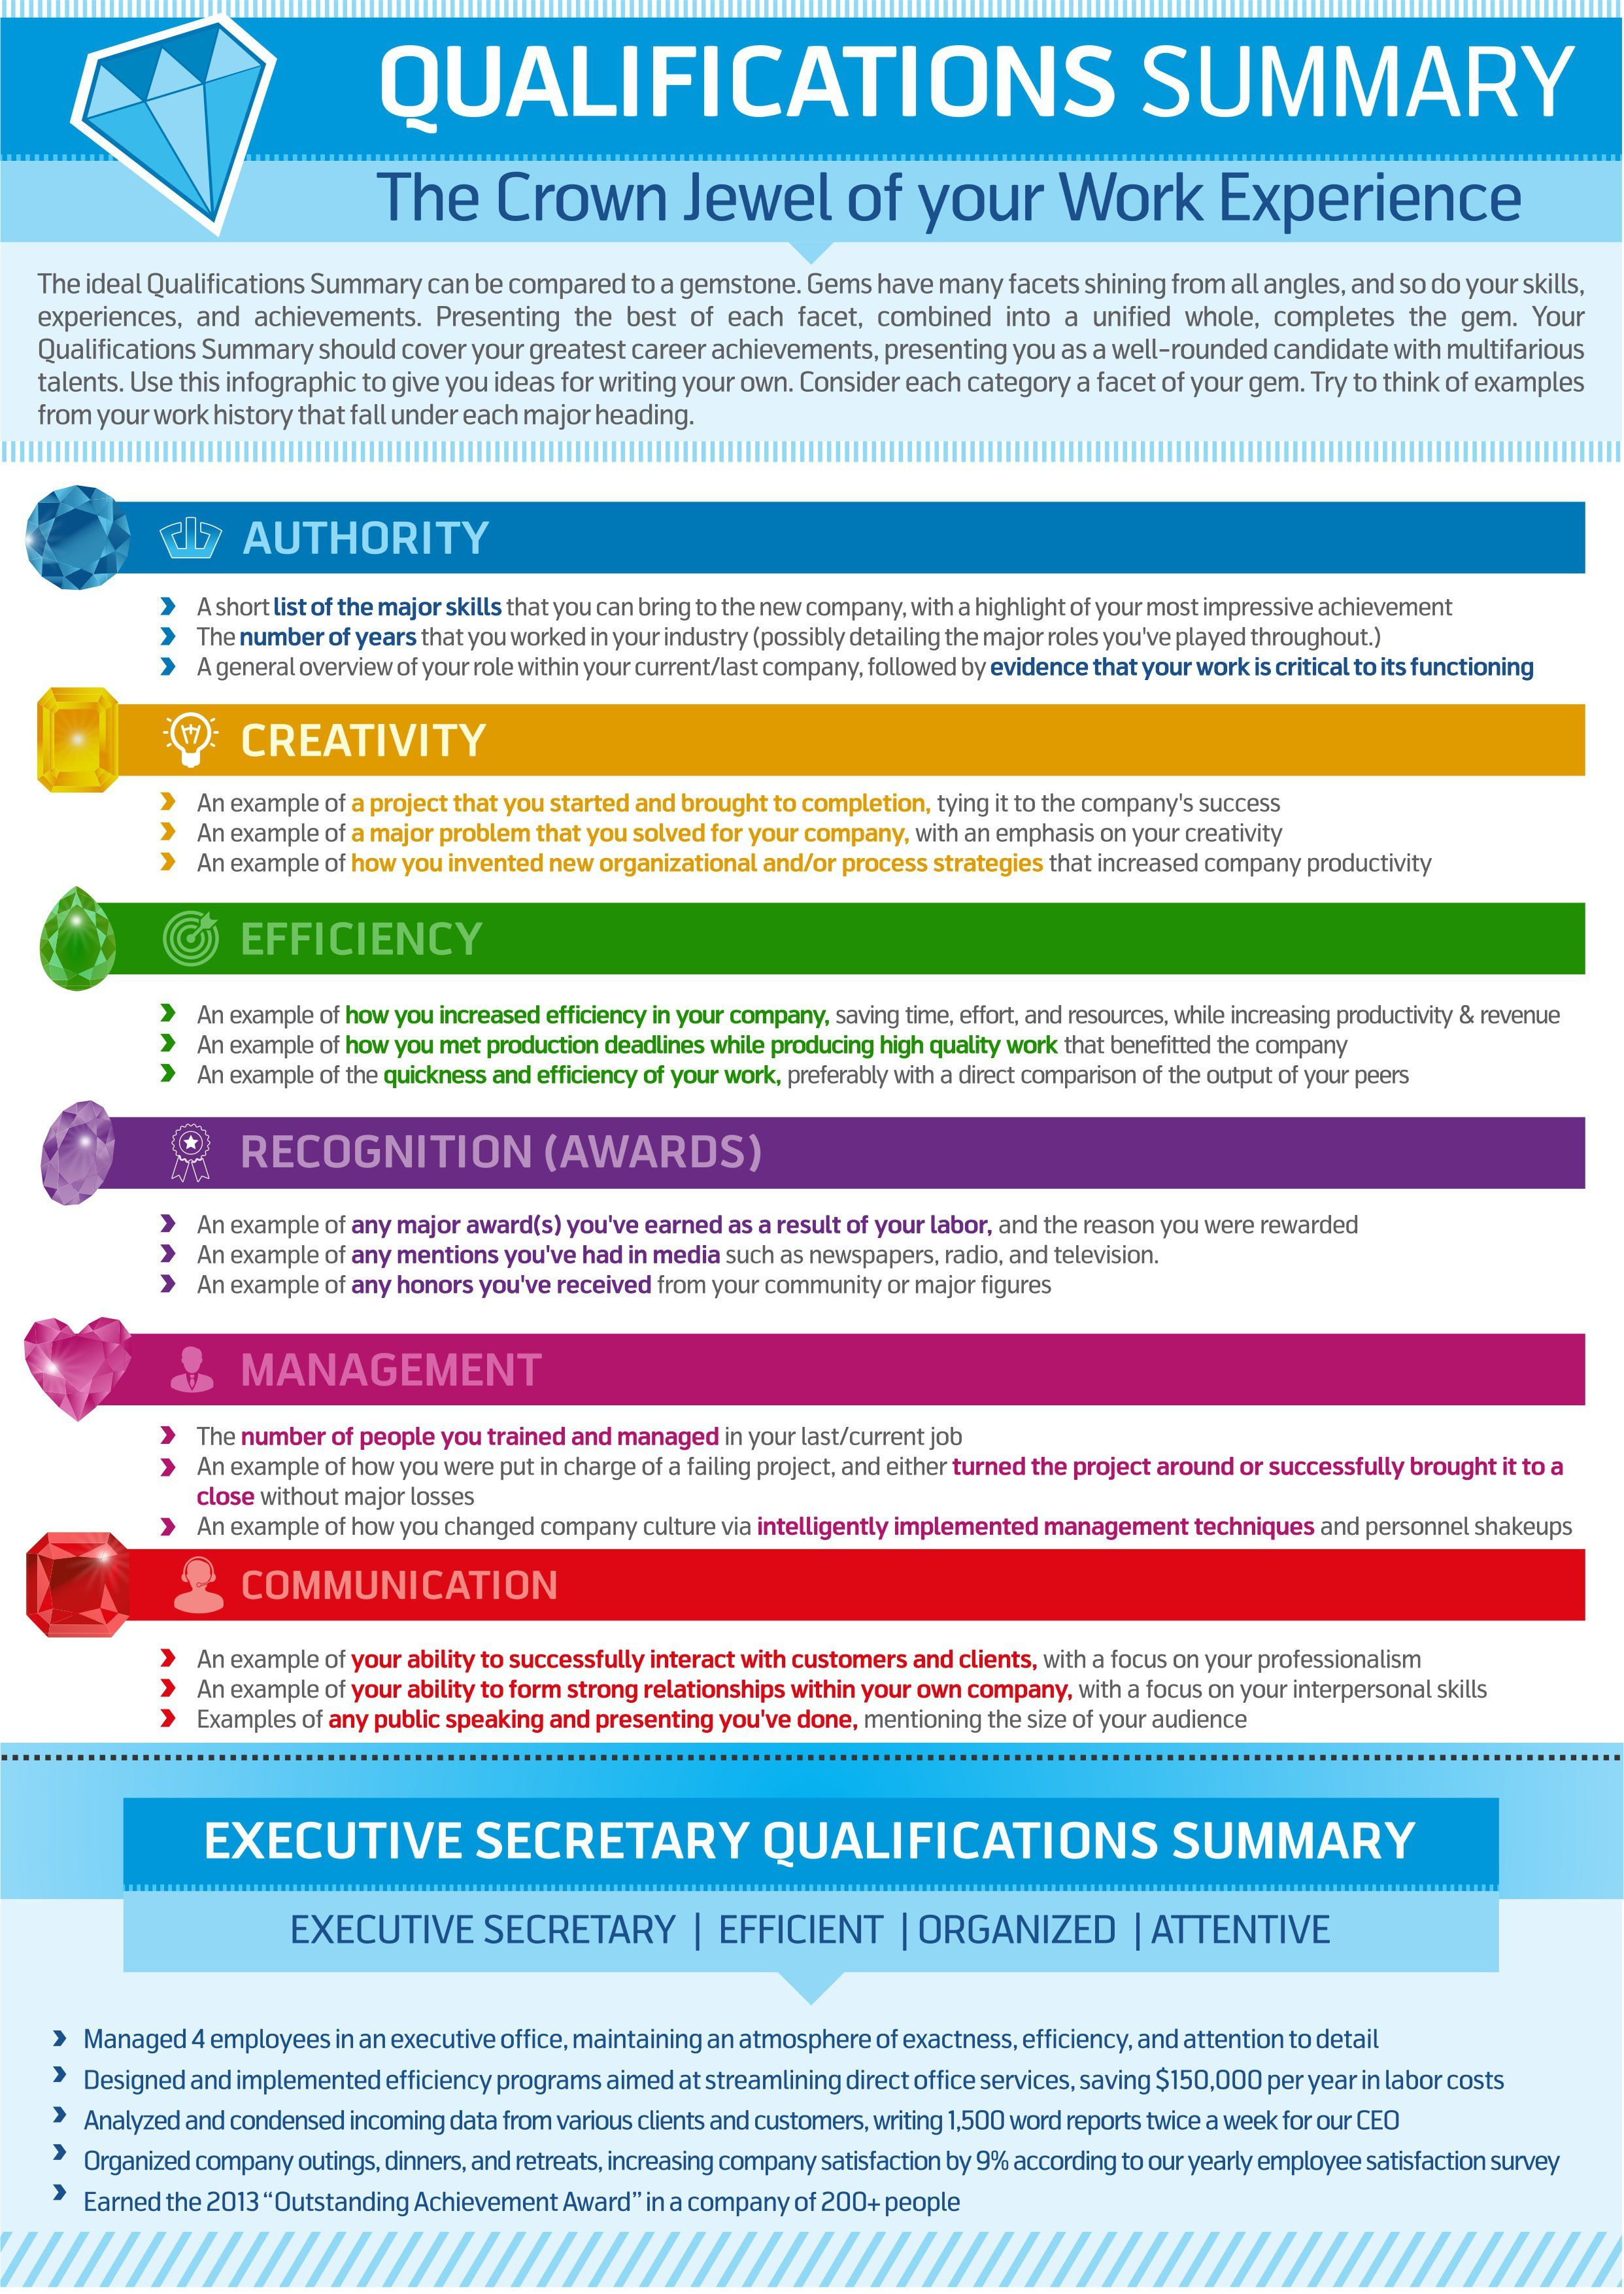 Writing A Resume Summary Section Qualifications Summary Infographic Useful Info I Work